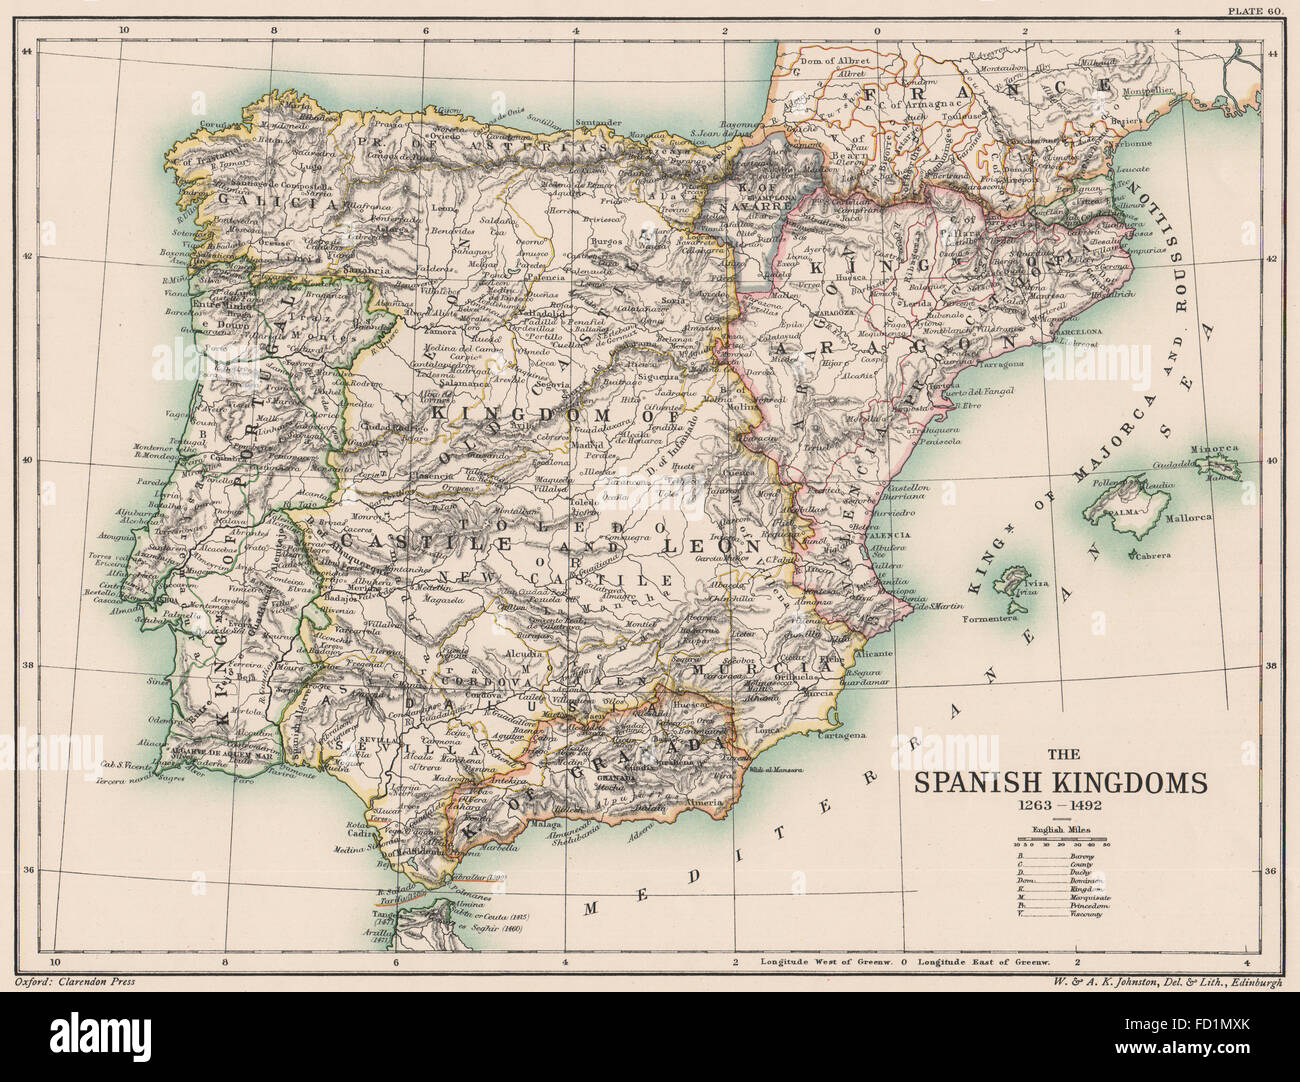 IBERIA  Spain  The Spanish Kingdoms 1263 1492  Portugal  1902     IBERIA  Spain  The Spanish Kingdoms 1263 1492  Portugal  1902 antique map